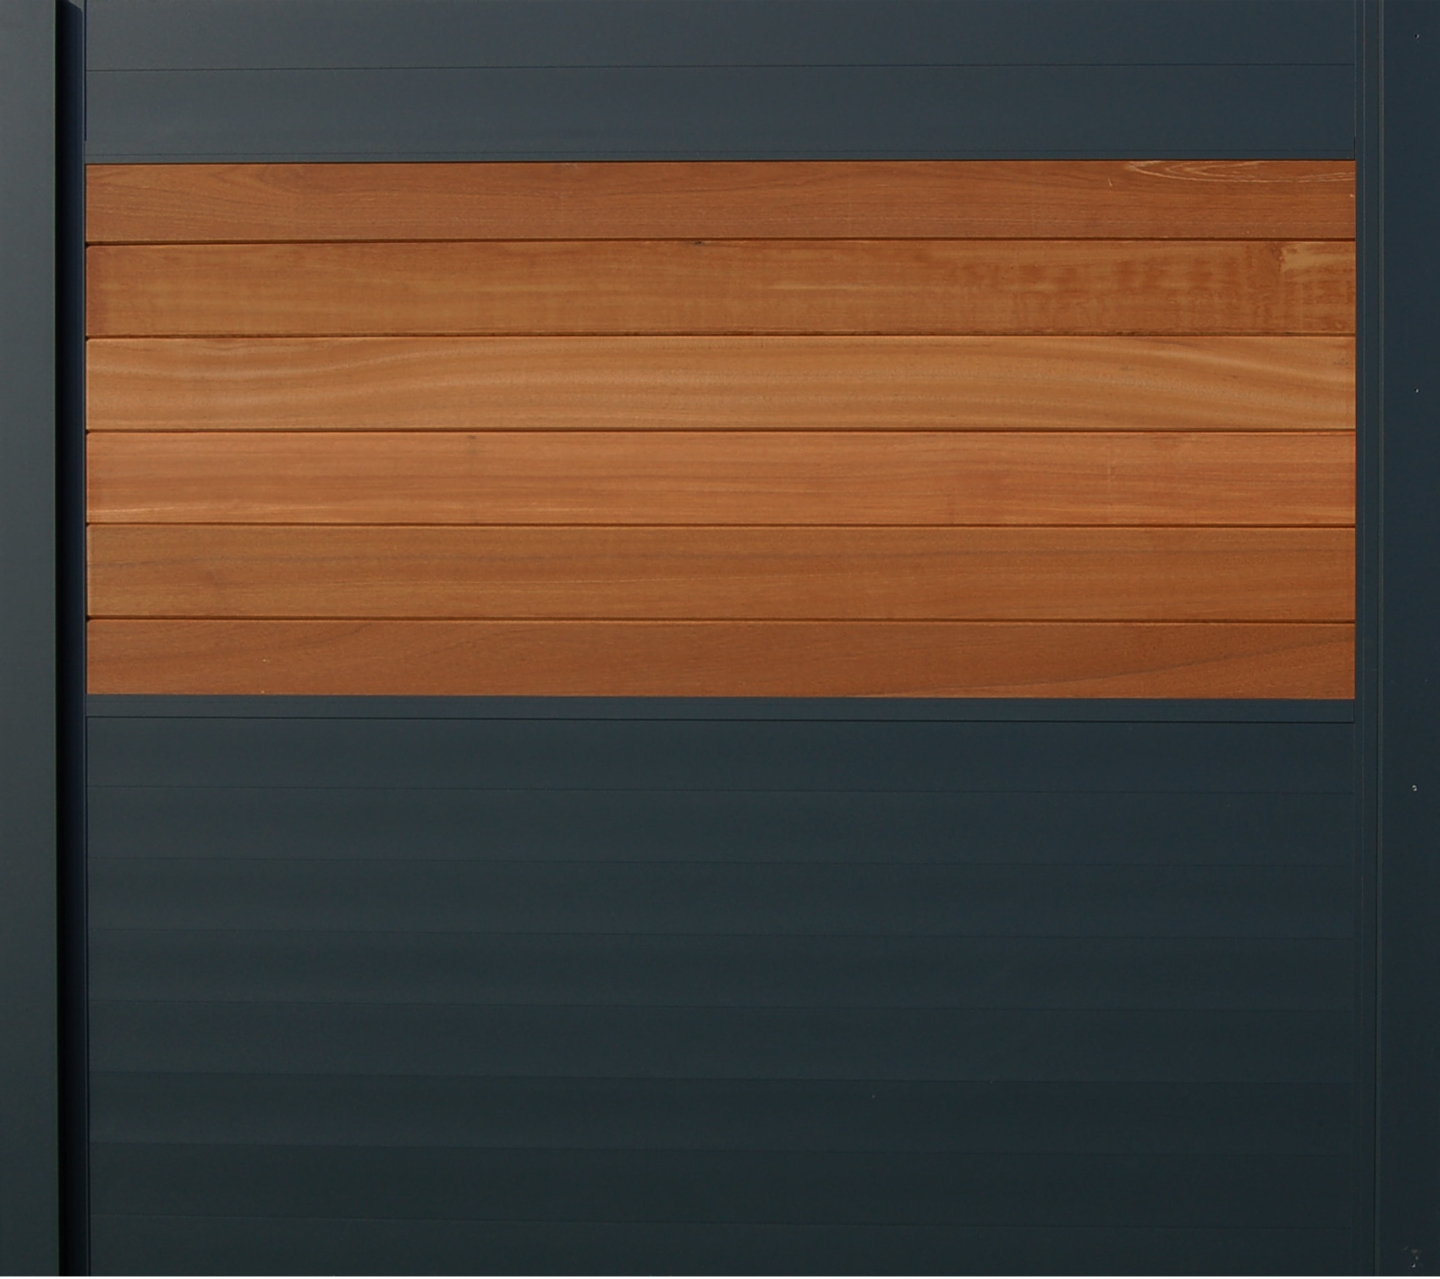 IdeAL scherm | Antraciet- Bangkirai | 180x180 | 6 planks